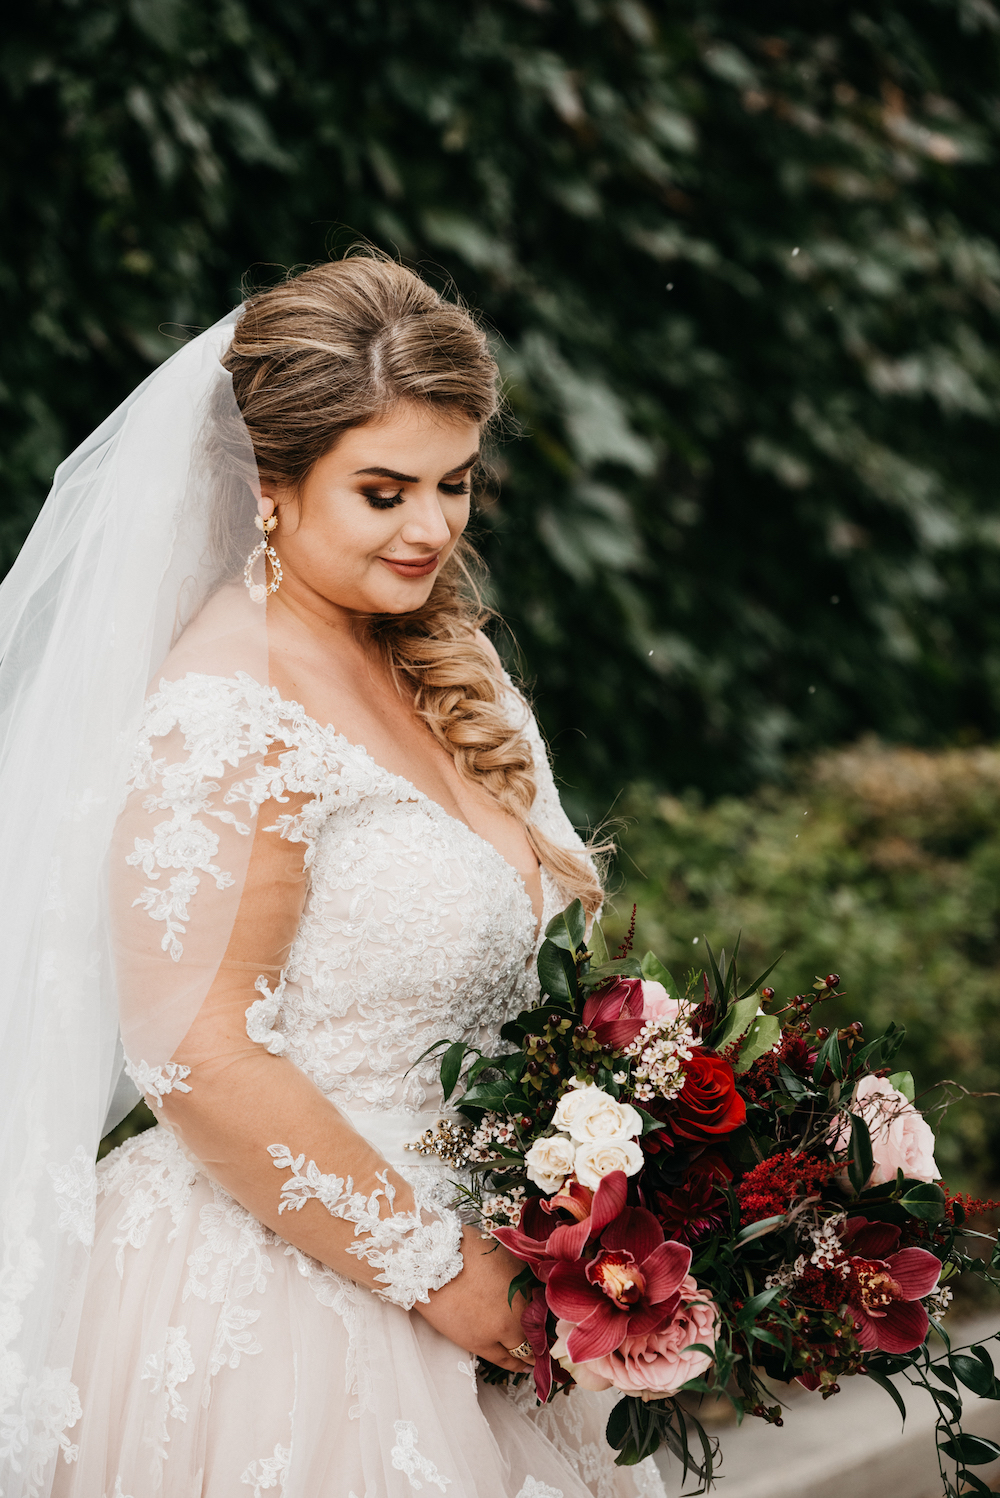 Burgundy and Blush Bridal Bouquet - Wedding Florists in Winnipeg